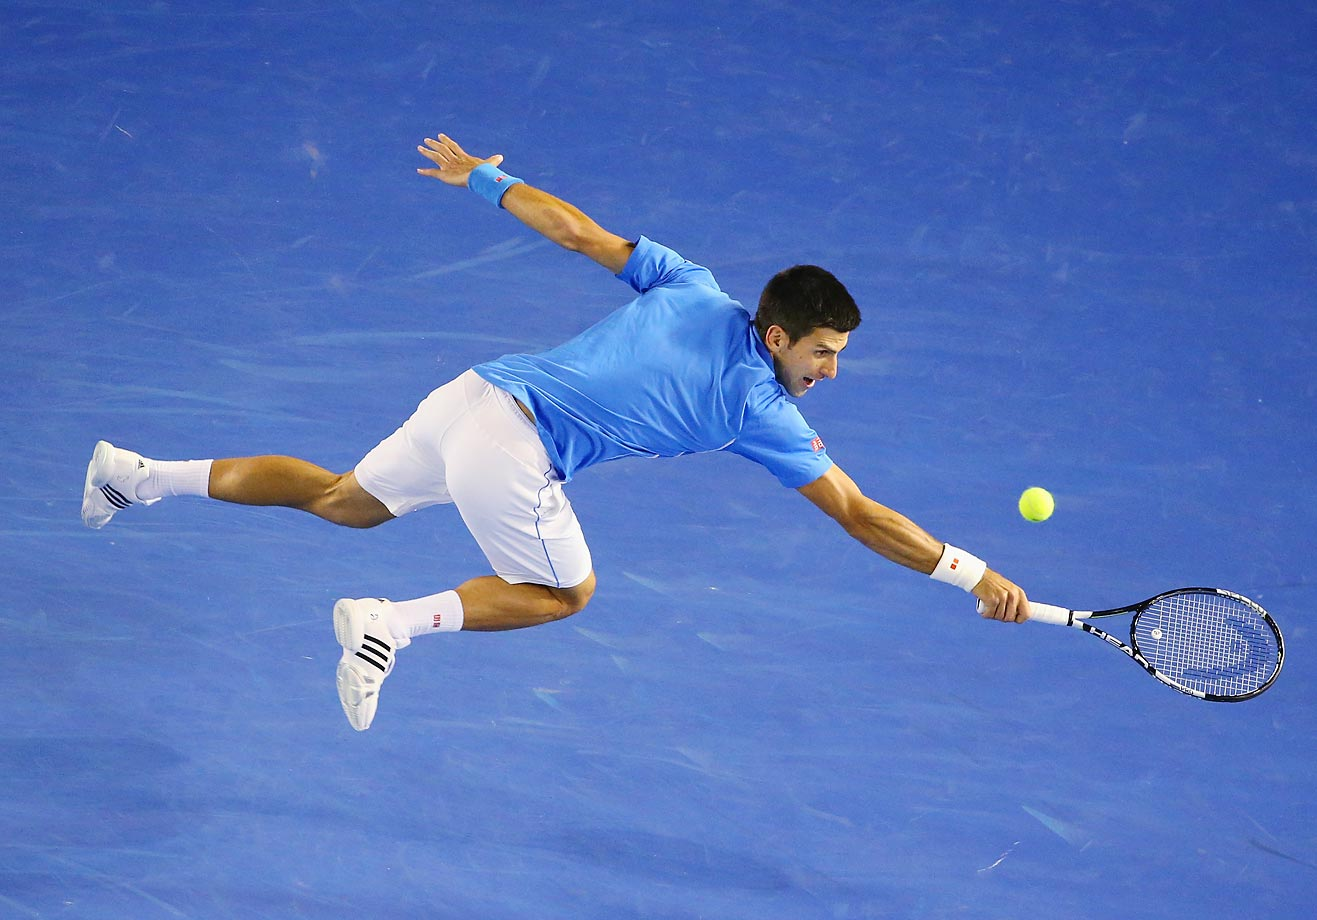 Novak Djokovic stretches for a backhand in his match against Milos Raonic at the Australian Open.